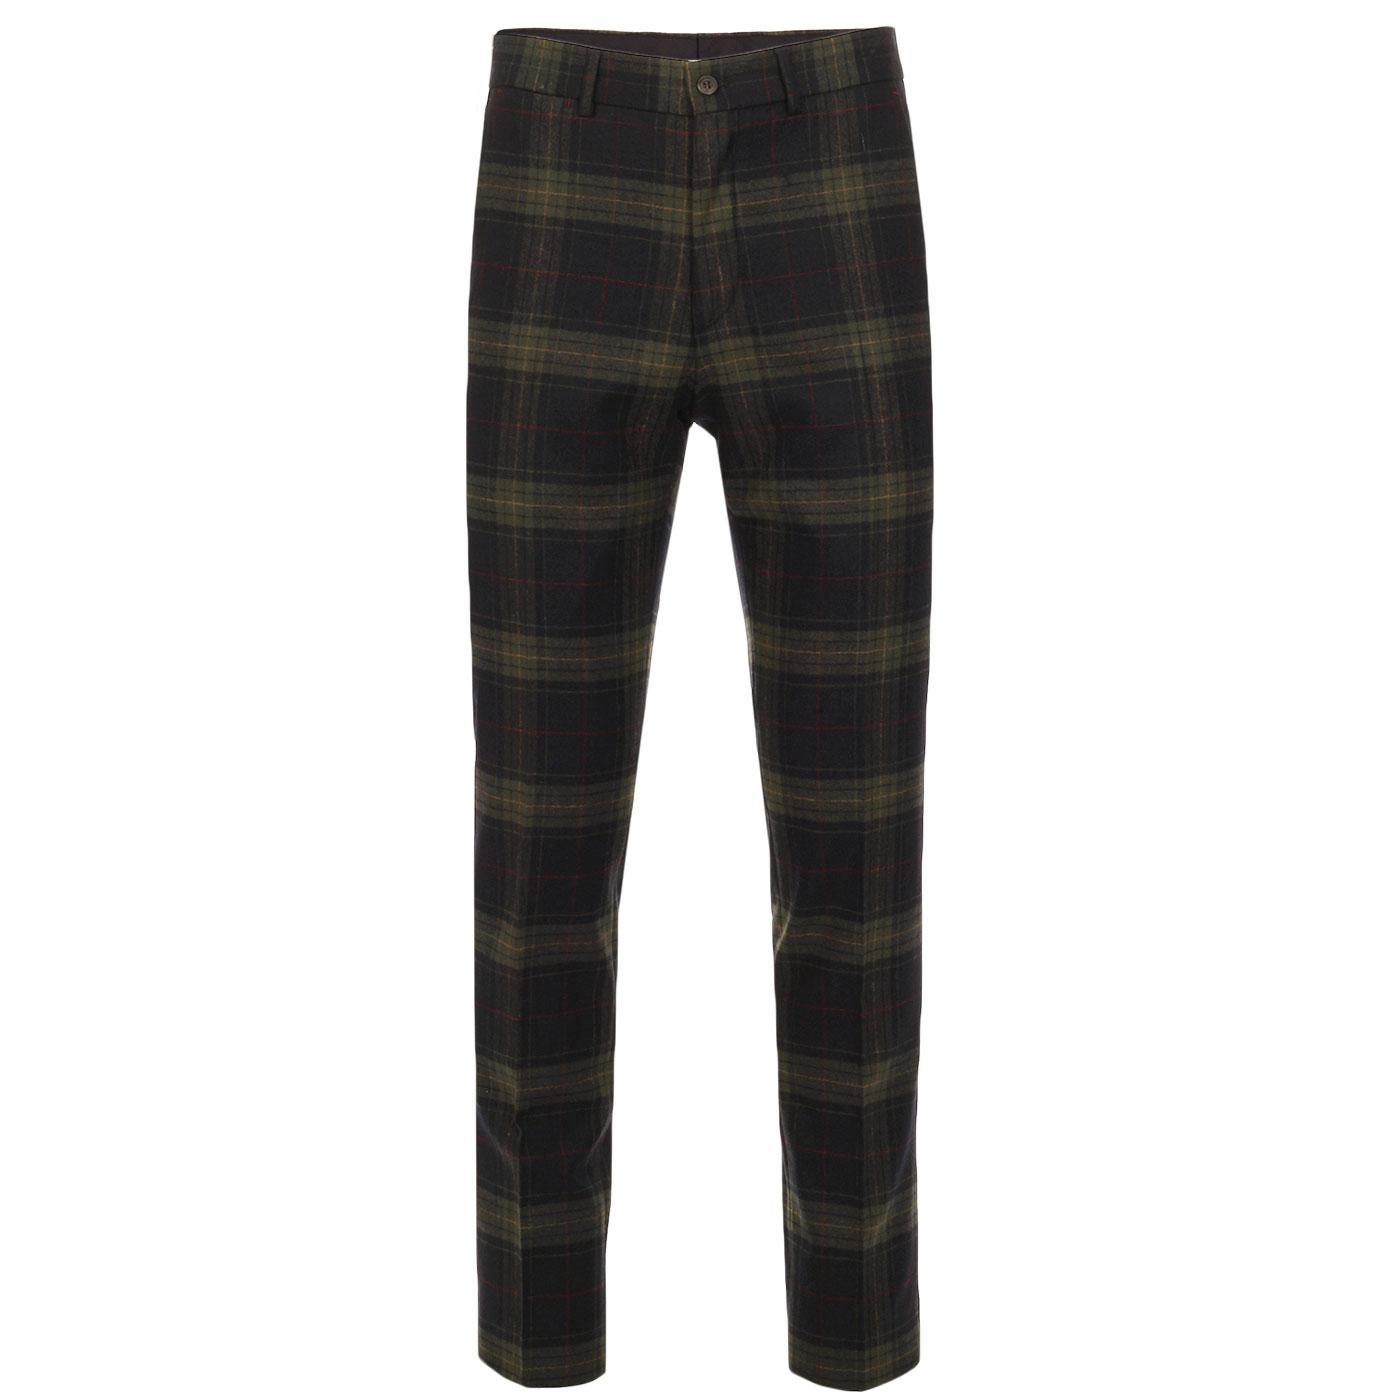 Radisson GIBSON LONDON Mod Tartan Check Trousers